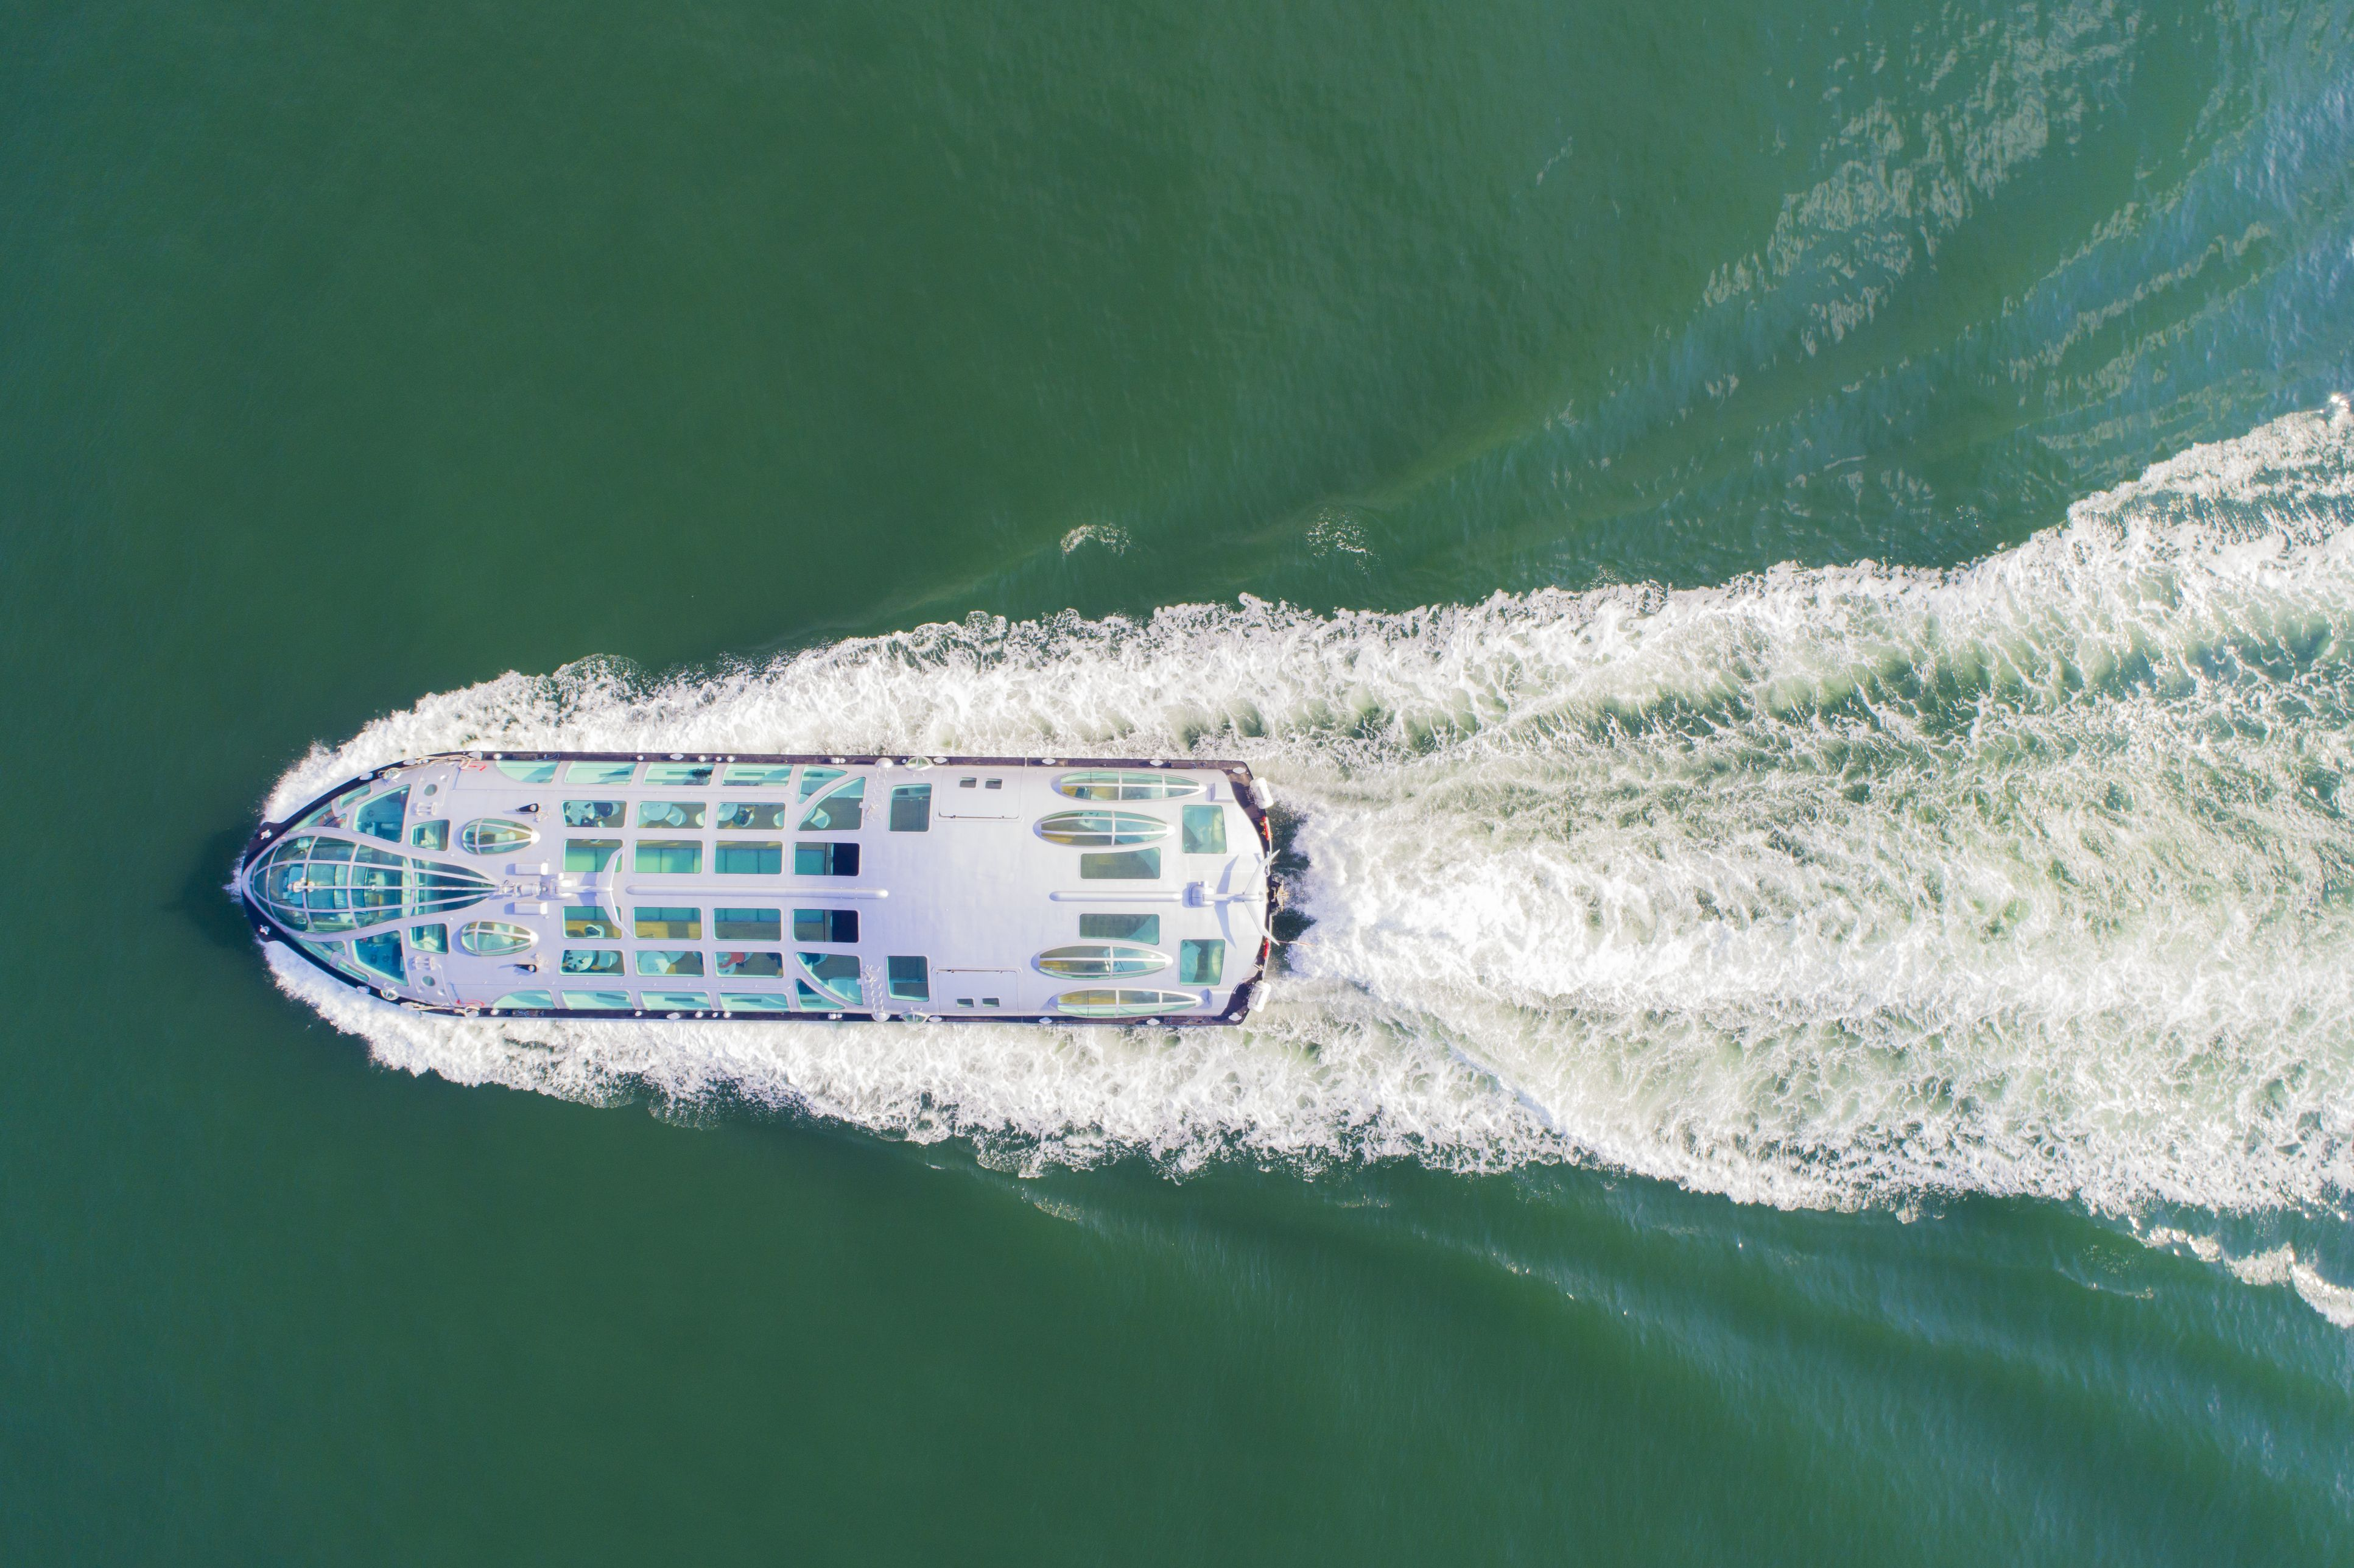 Aerial view of cruise ship on sea.